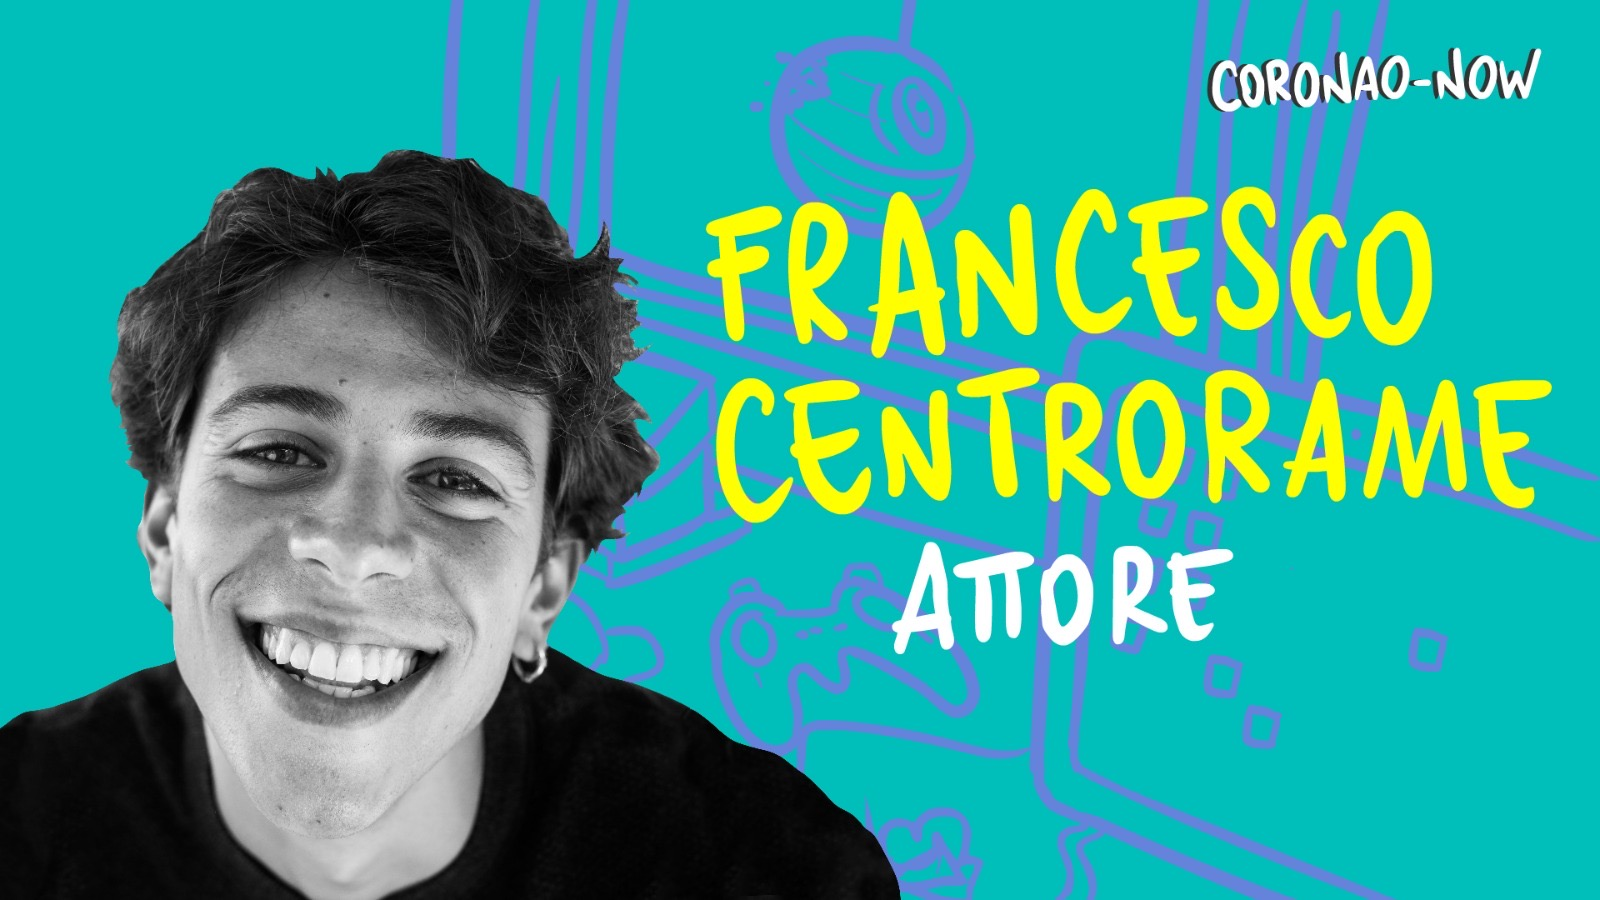 Francesco-Centorame